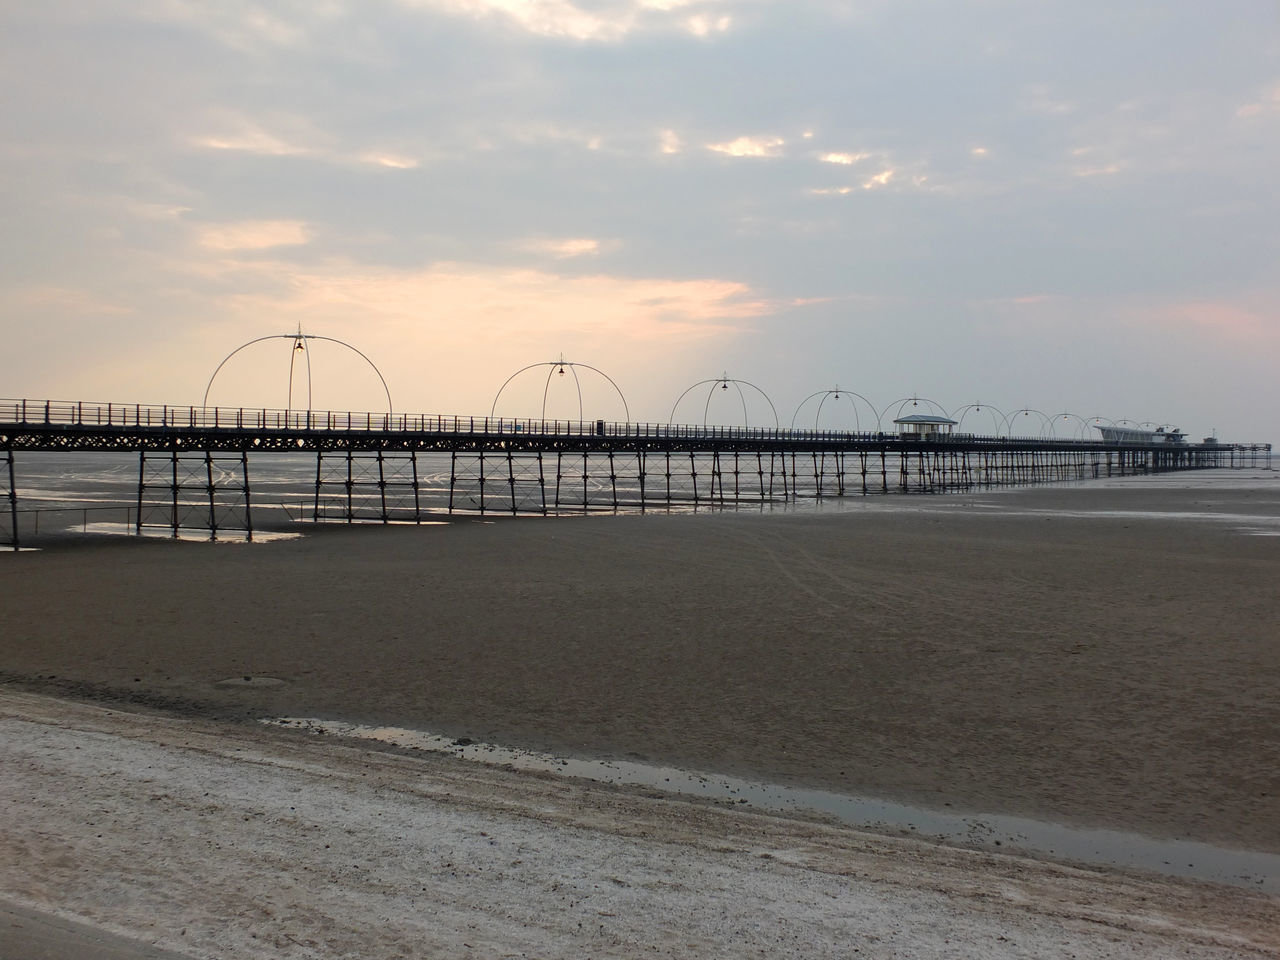 southport beach and pier Architecture Beach Beauty In Nature Built Structure Day Horizon Over Water Nature No People Outdoors Sand Scenics Sea Sky Southport Southport Pier Sunset Water